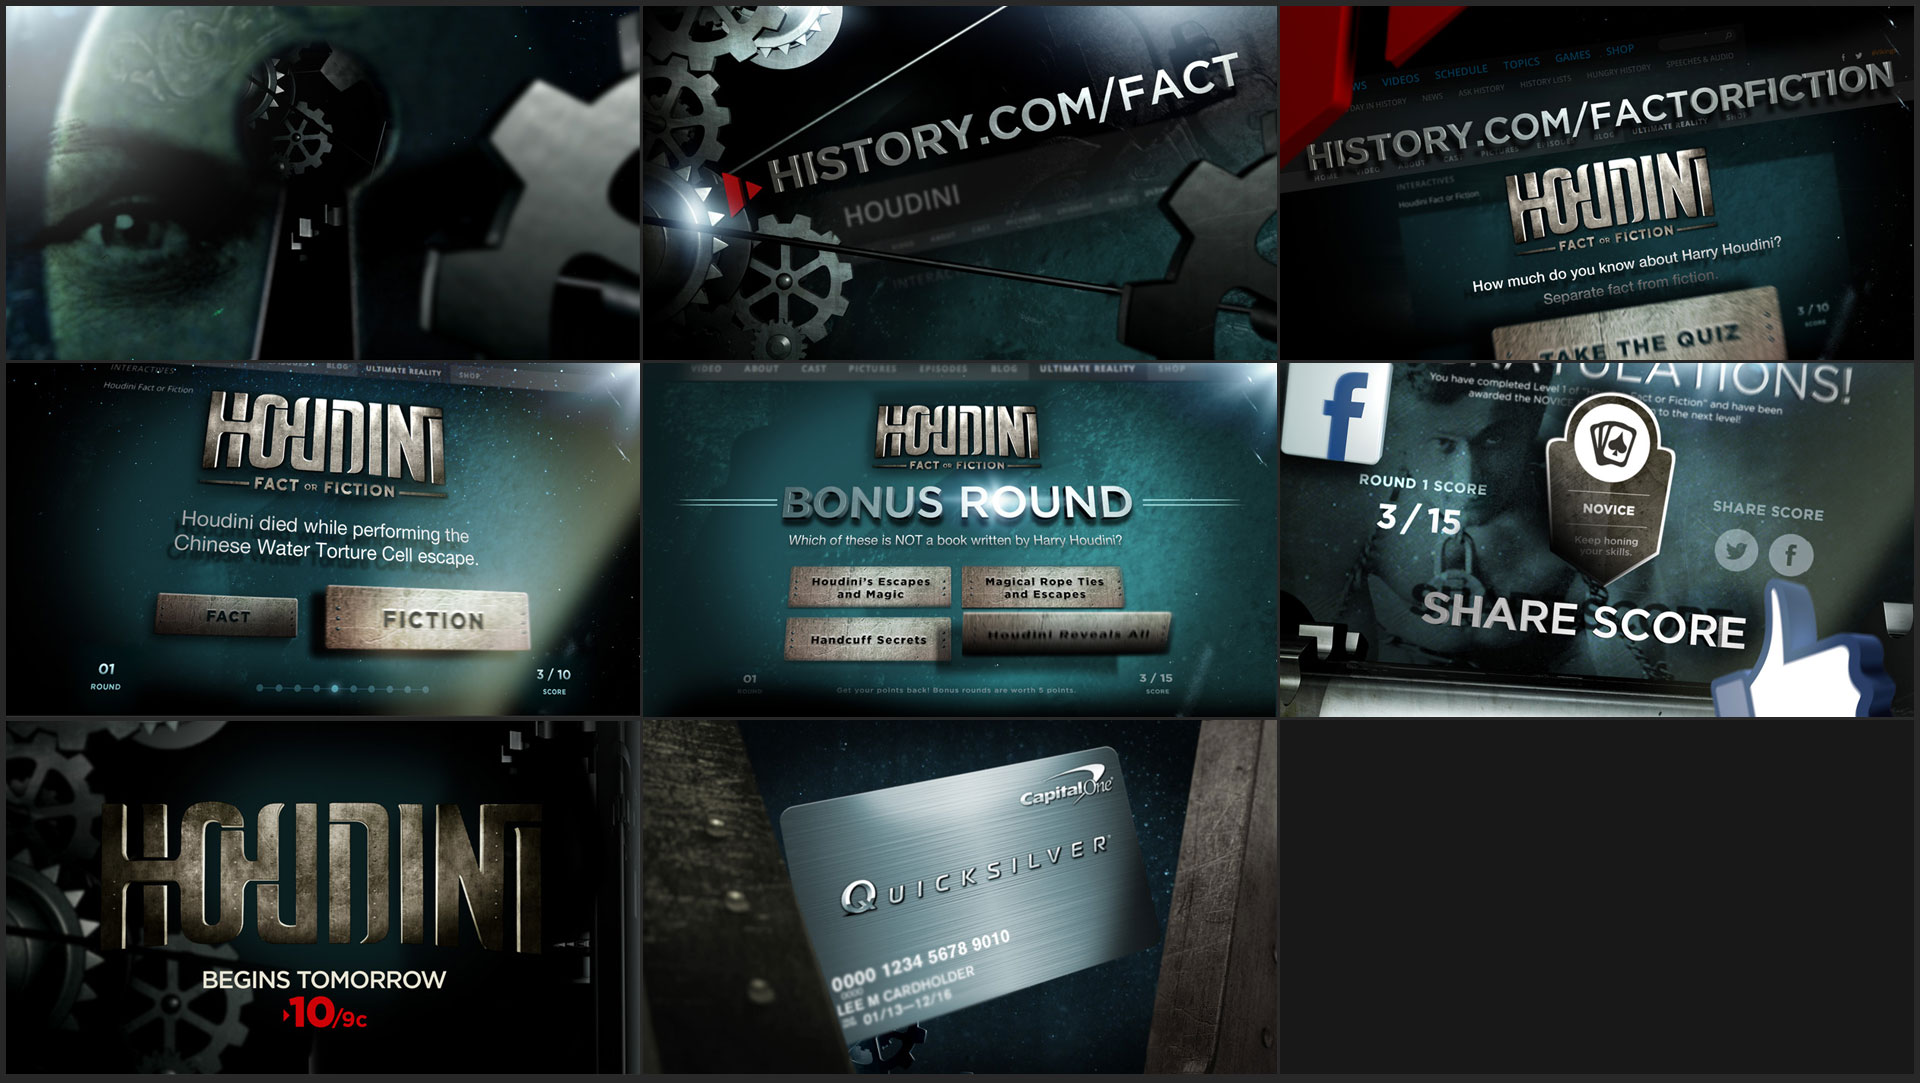 HOUDINI: FACT OR FICTION CLIENT:  PRODUCED AT  GUESTSTAR for THE HISTORY CHANNEL ART DIRECTOR: CURT NEUMANN  A design for a spot promoting the HC Original movie, Houdini and inviting the viewer to participate in a Fact or Fiction quiz.